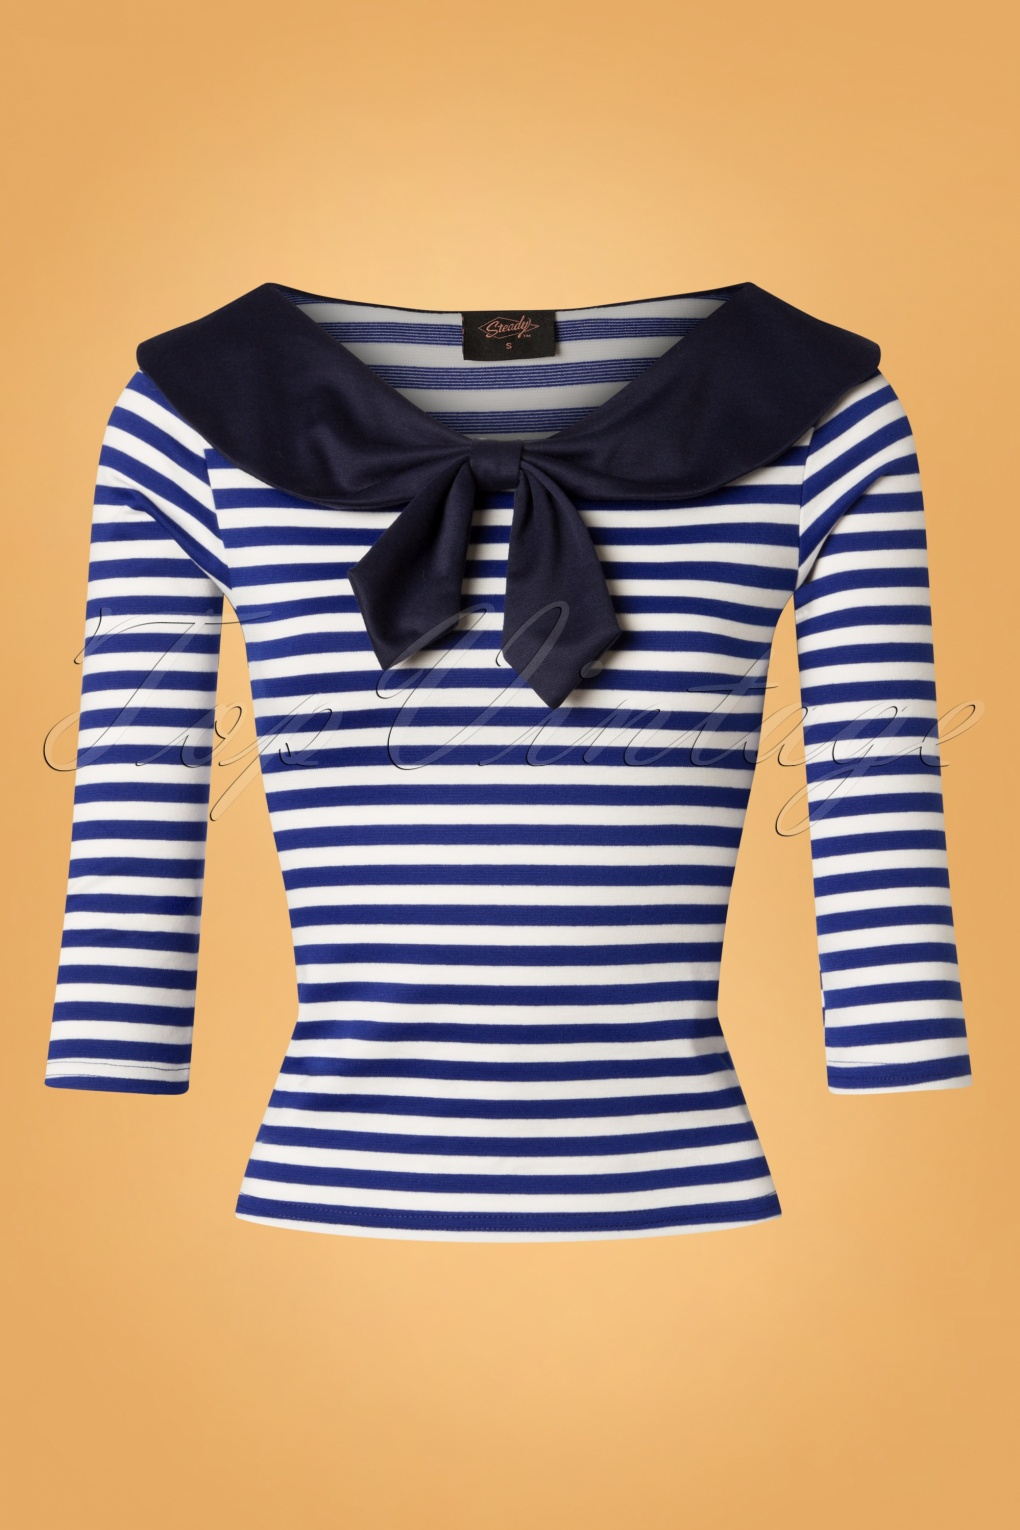 Sailor Dresses, Nautical Theme Dress, WW2 Dresses 50s Betsy Stripes Tie Top in Blue and White £40.33 AT vintagedancer.com